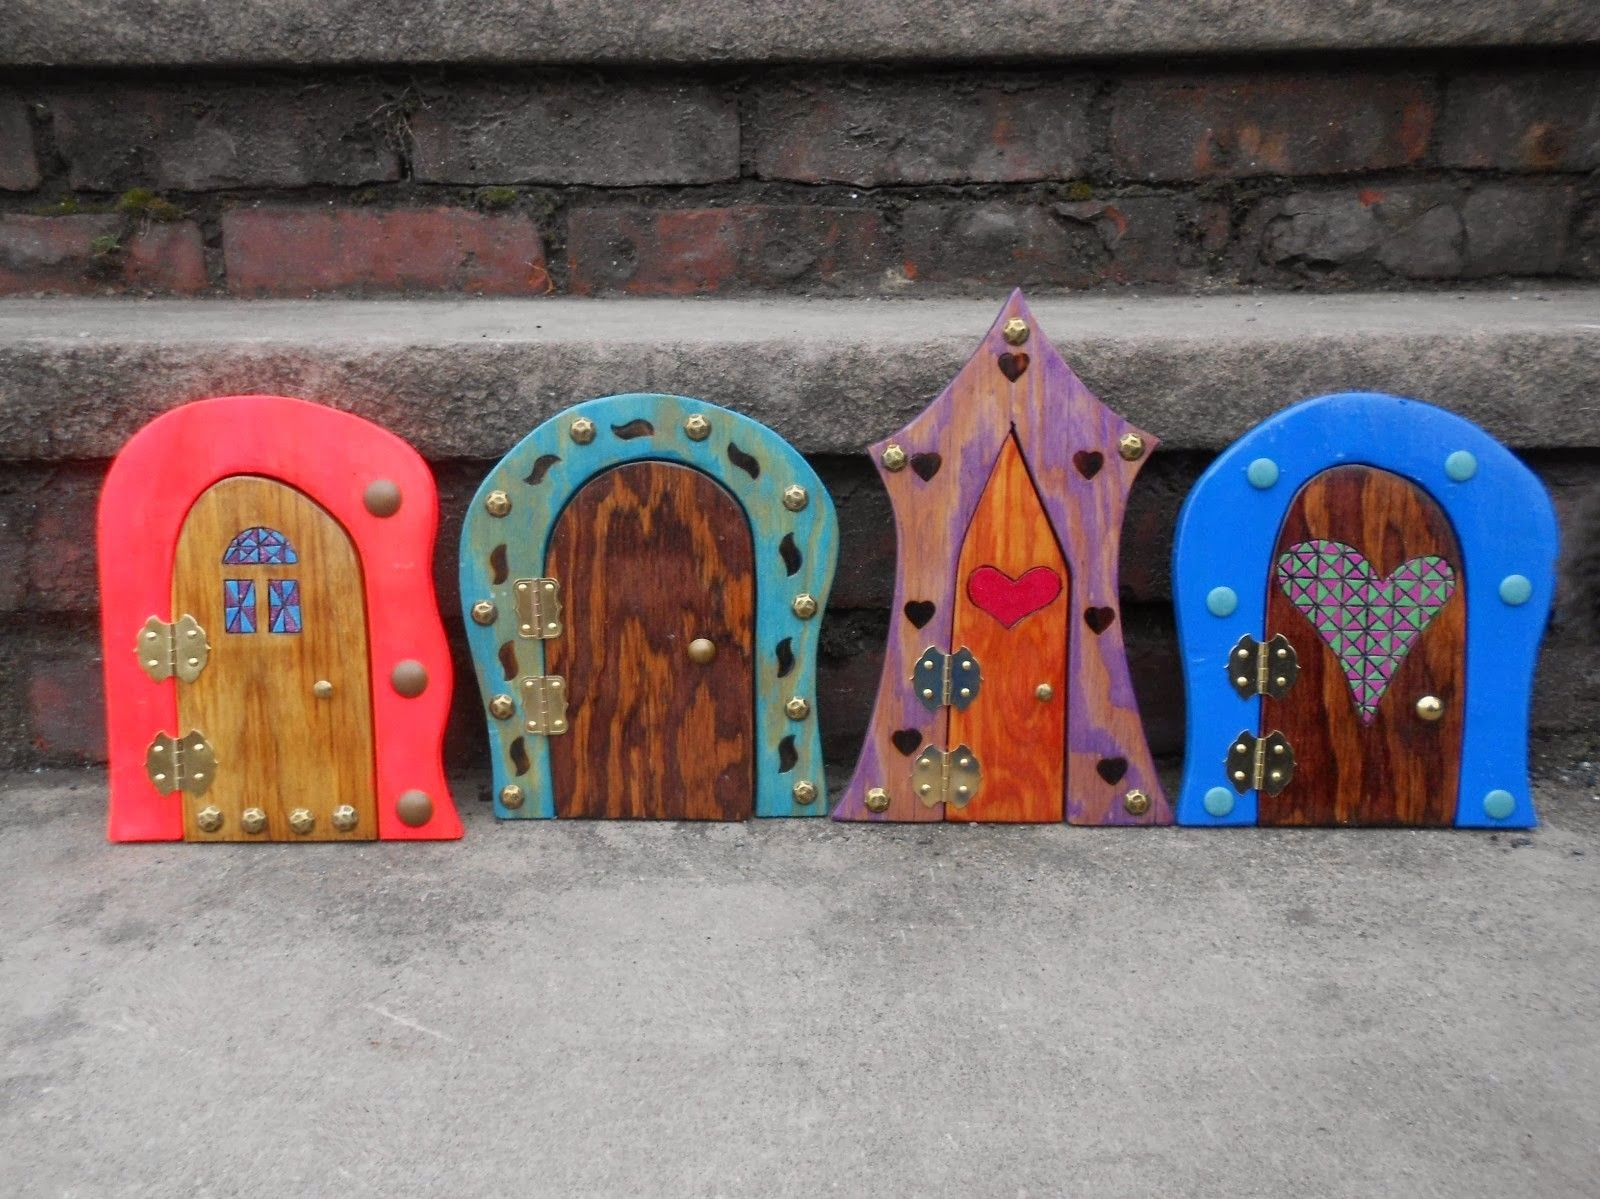 http://www.ebay.com/itm/OOAK-HANDCRAFTED-FAIRY-DOOR-hobbit-garden-decor-sprite-elf-fae-home-/251427519641?pt=LH_DefaultDomain_0&var=&hash=item3a8a3f7c99